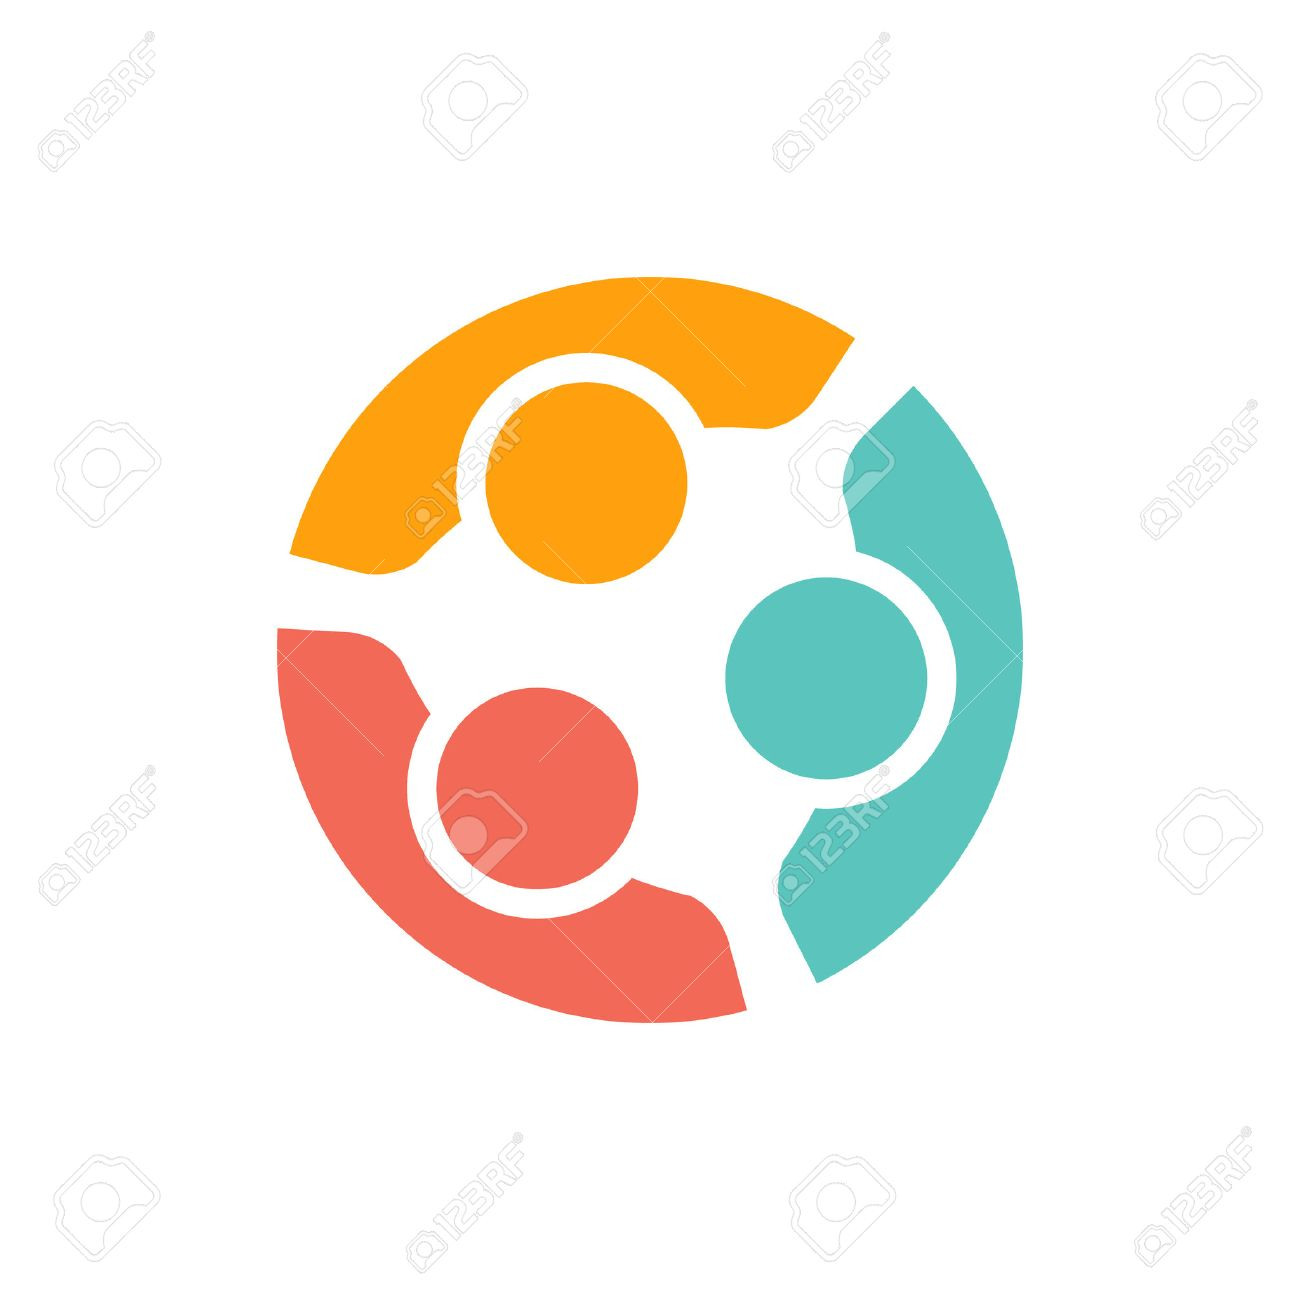 team of three people logo concept of people group meeting